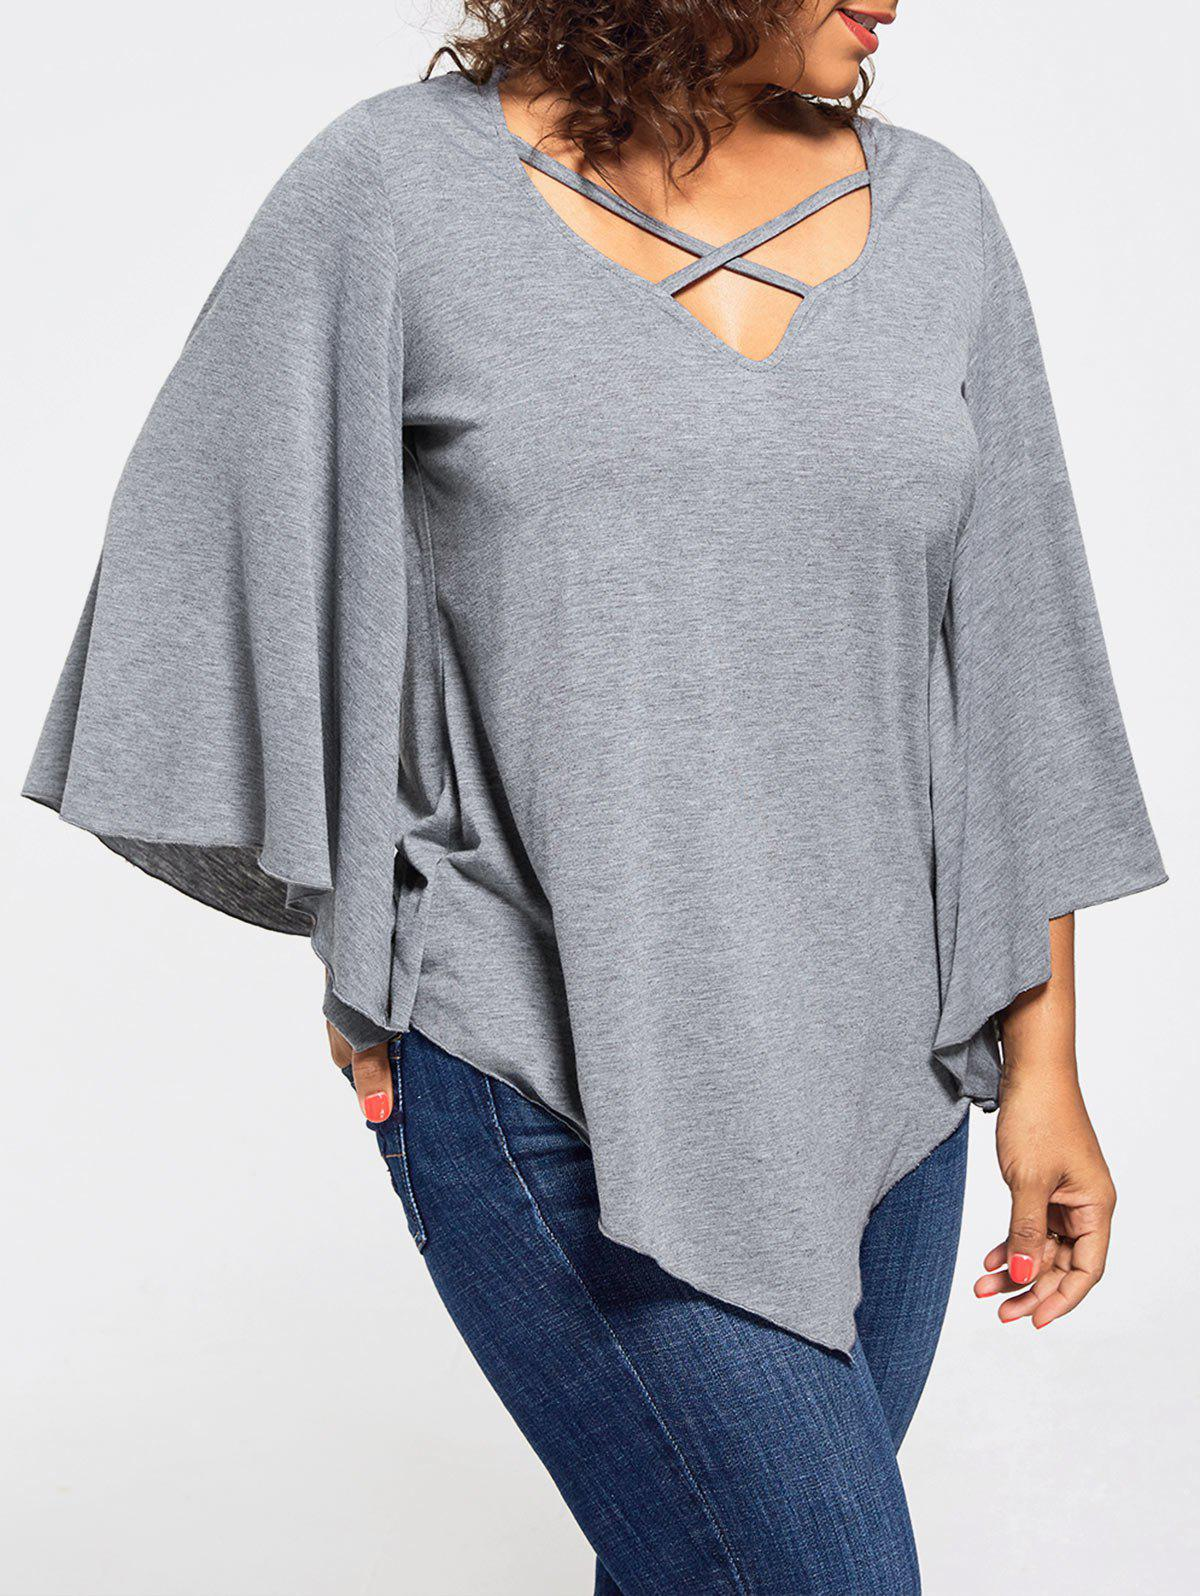 Lace Insert Batwing Sleeve Plus Size BlouseWOMEN<br><br>Size: 4XL; Color: GRAY; Material: Polyester,Spandex; Shirt Length: Regular; Sleeve Length: Three Quarter; Collar: V-Neck; Style: Fashion; Season: Fall,Spring; Sleeve Type: Batwing Sleeve; Embellishment: Criss-Cross,Lace; Pattern Type: Solid; Elasticity: Elastic; Weight: 0.3200kg; Package Contents: 1 x Blouse;